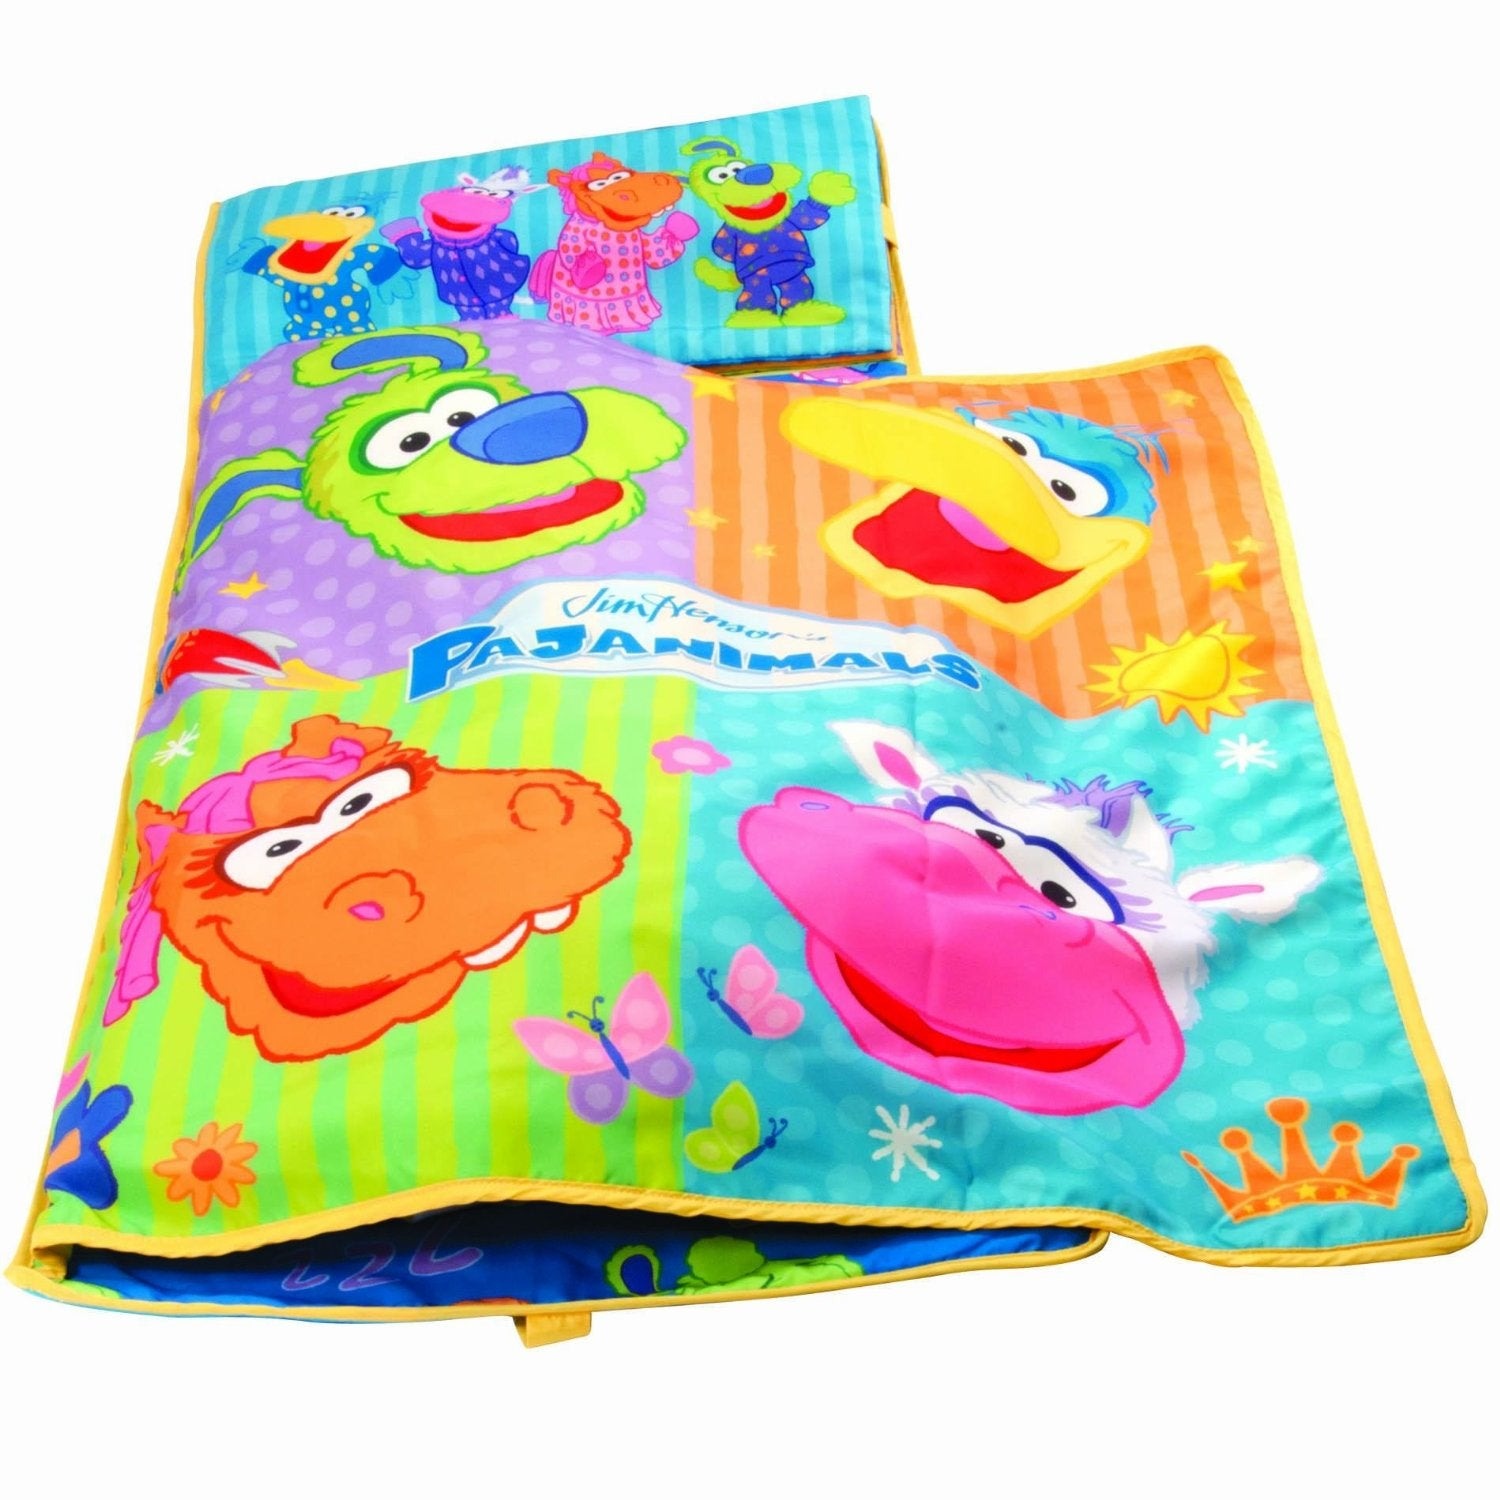 Pajanimals Toys - Snuggle Up Story Mat